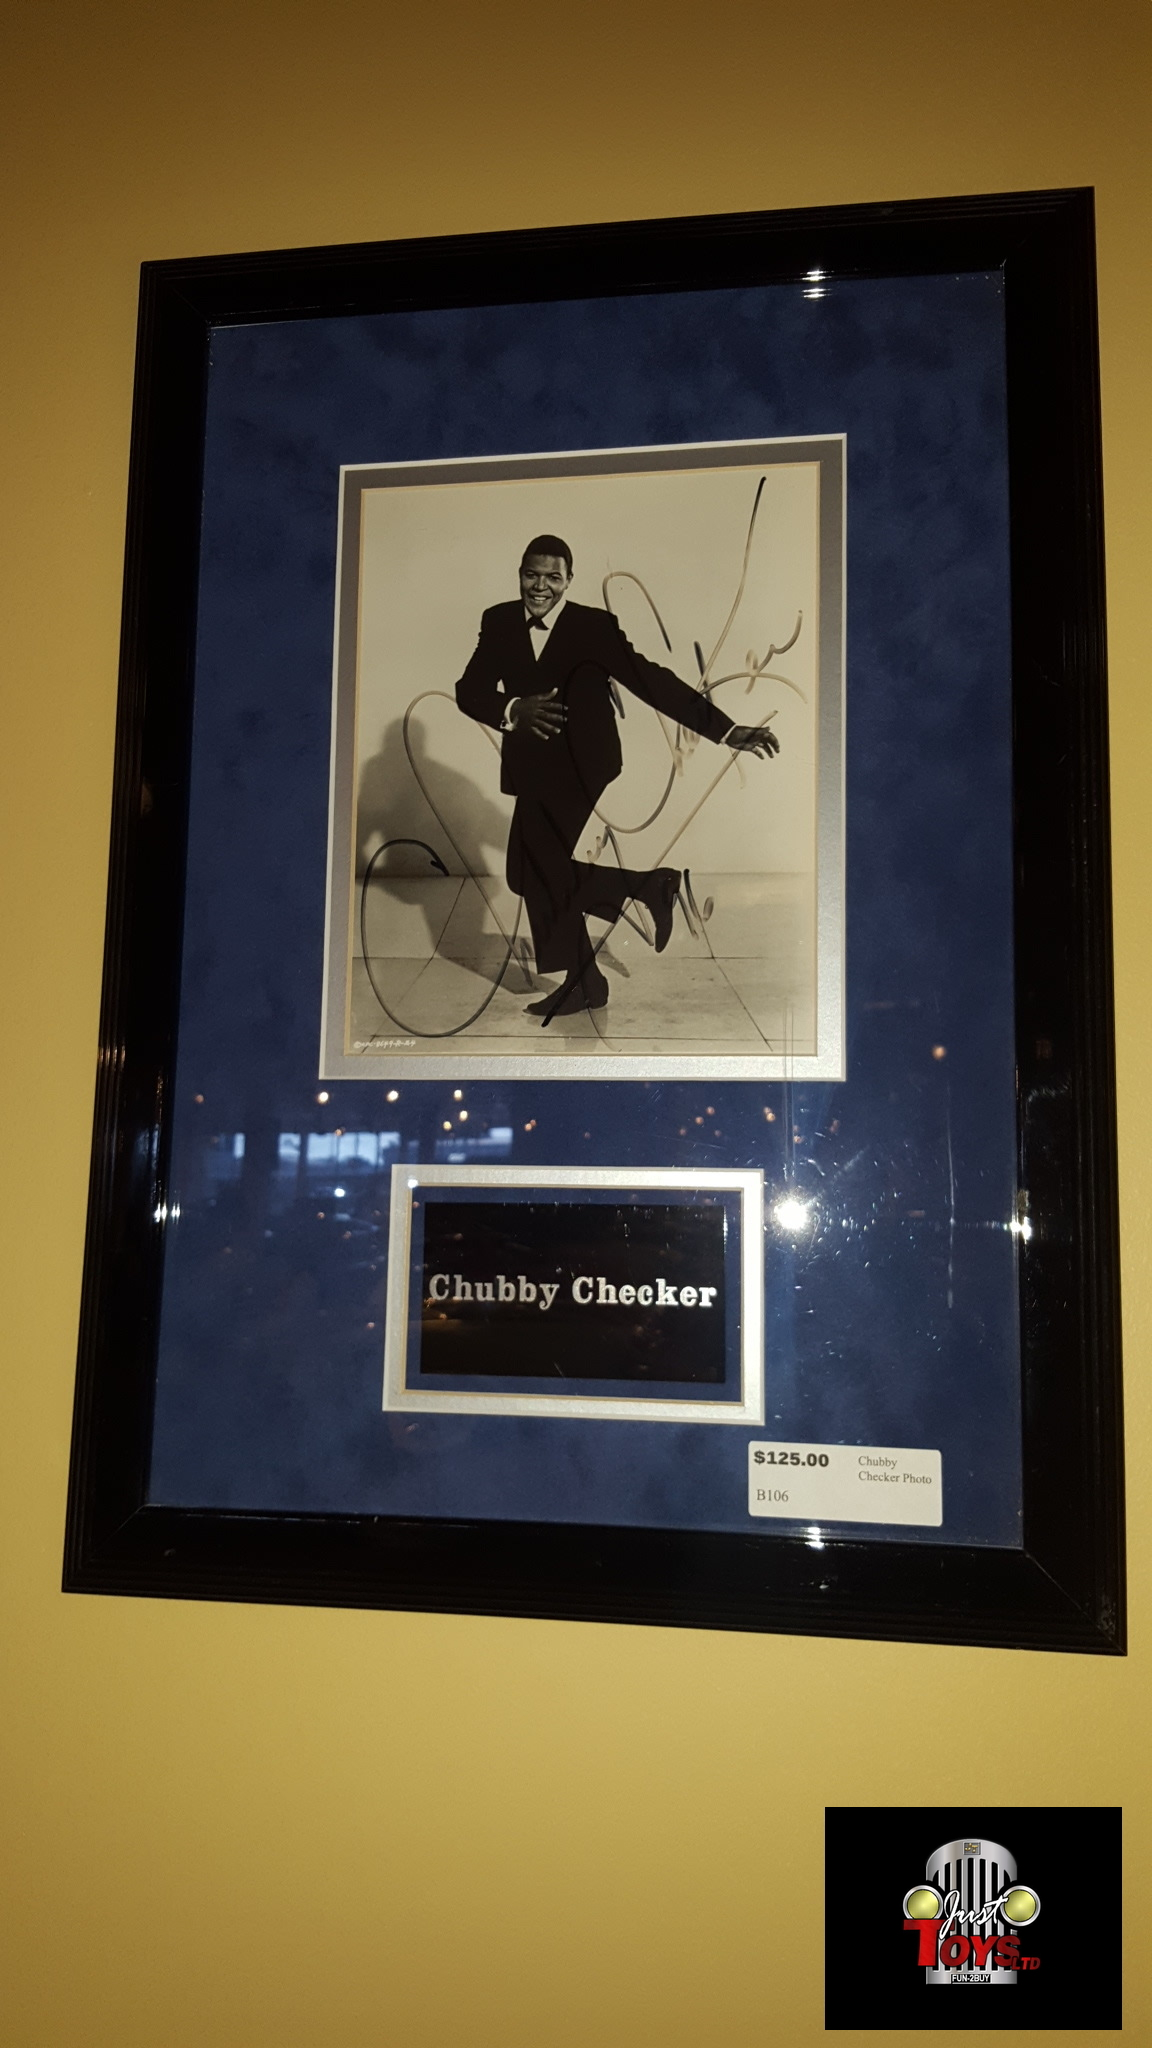 Autographed Chubby Checker Photo